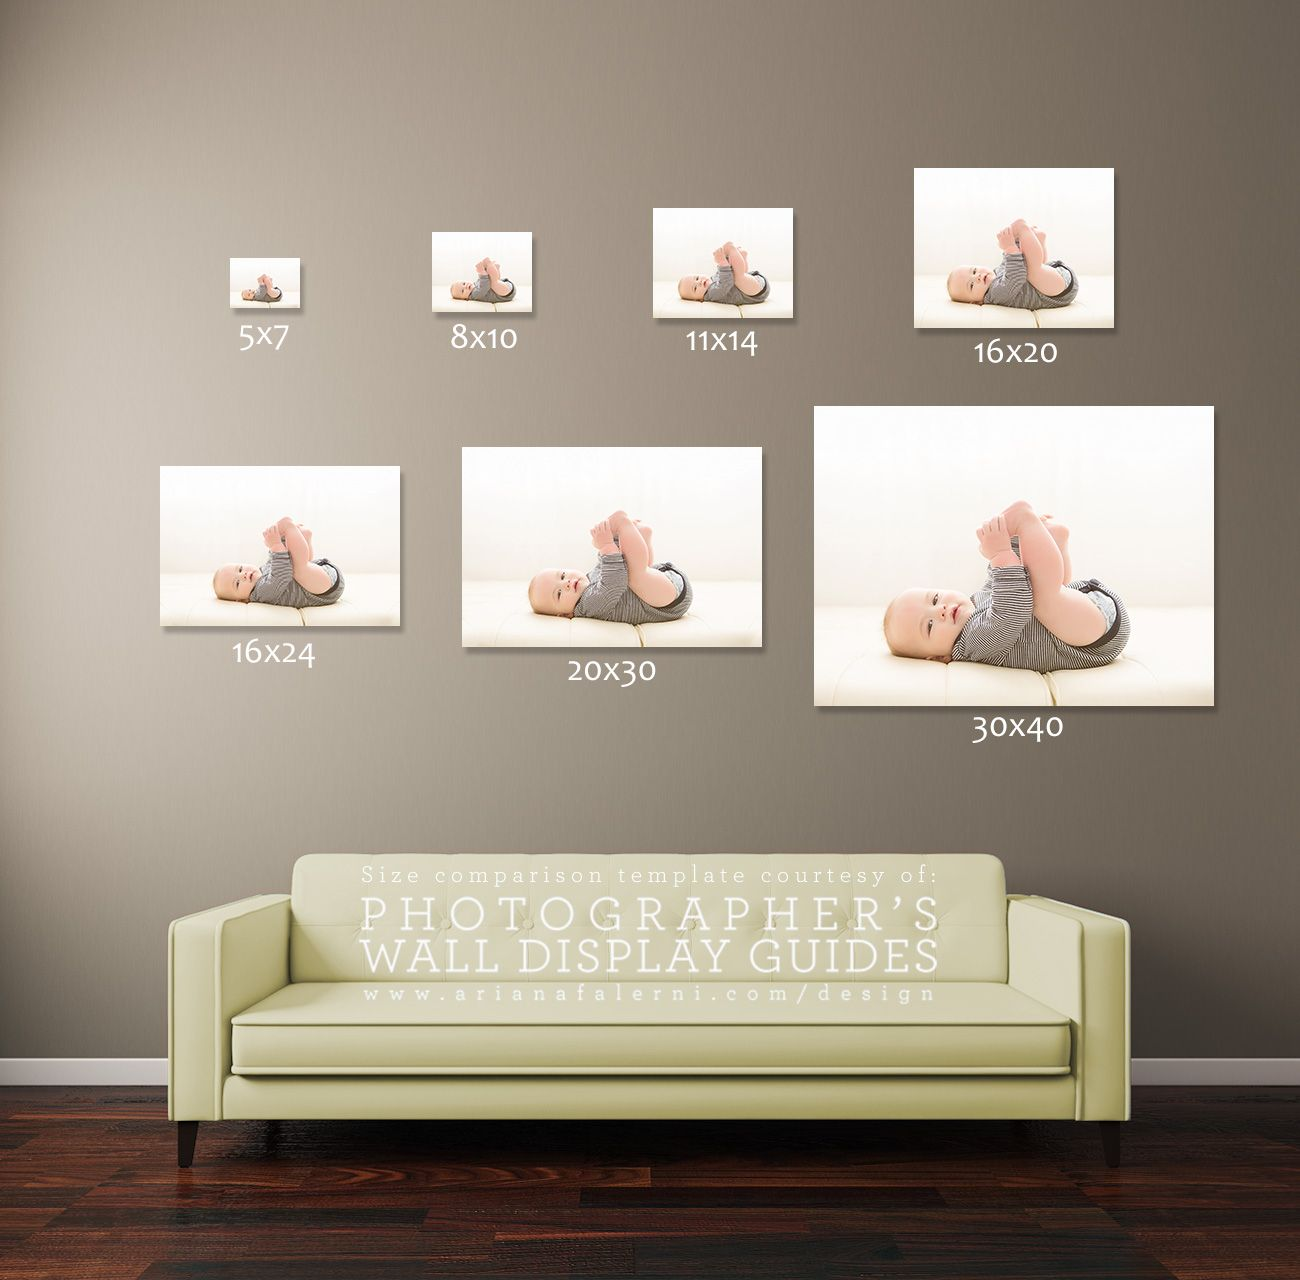 Free Hufnagel Template And Action Ariana Falerni Design Design Wall Display Wall Cluster